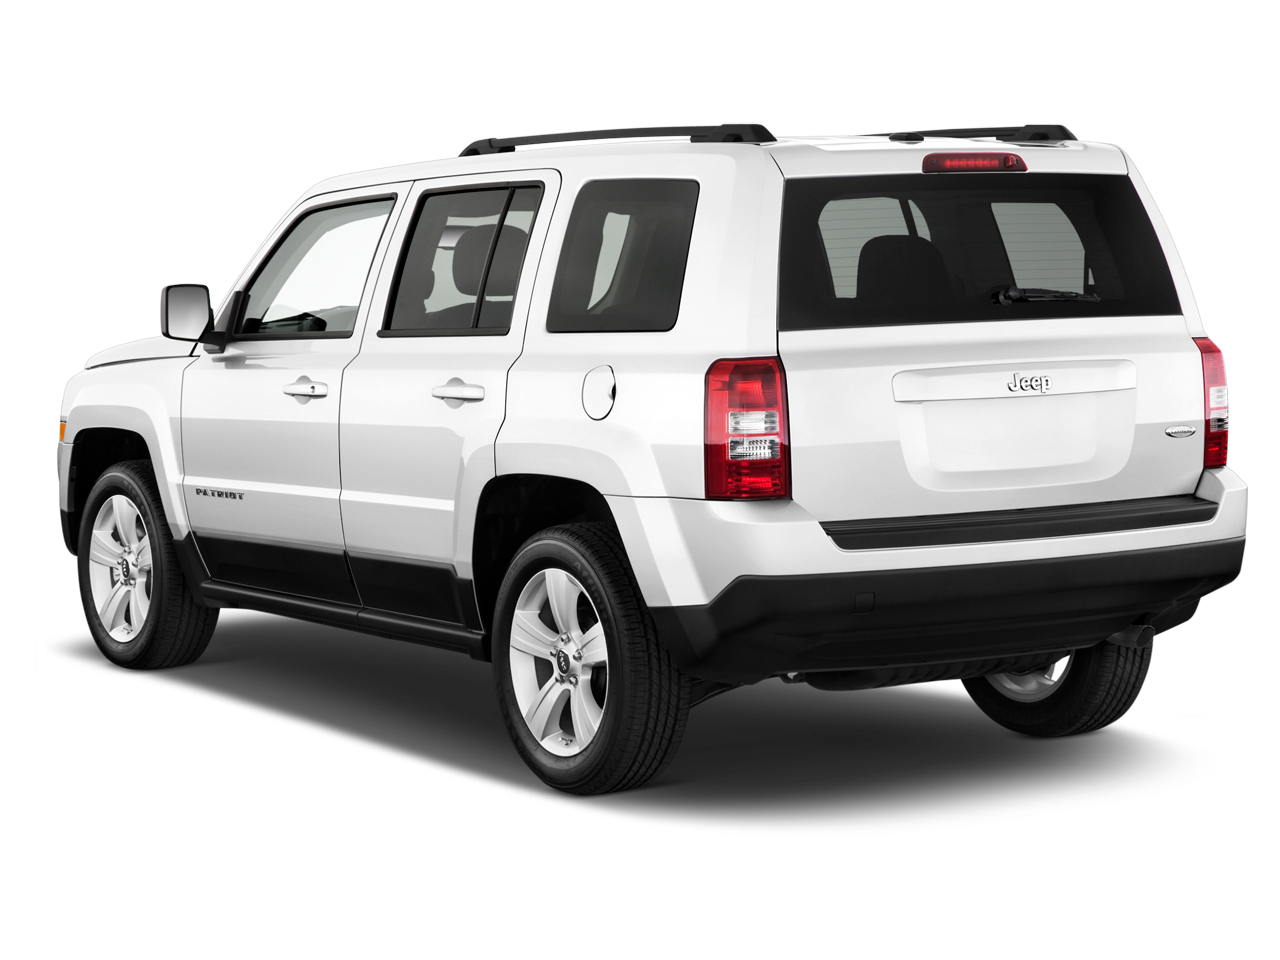 used 2015 jeep patriot sport - gainesville ga - hayes chrysler